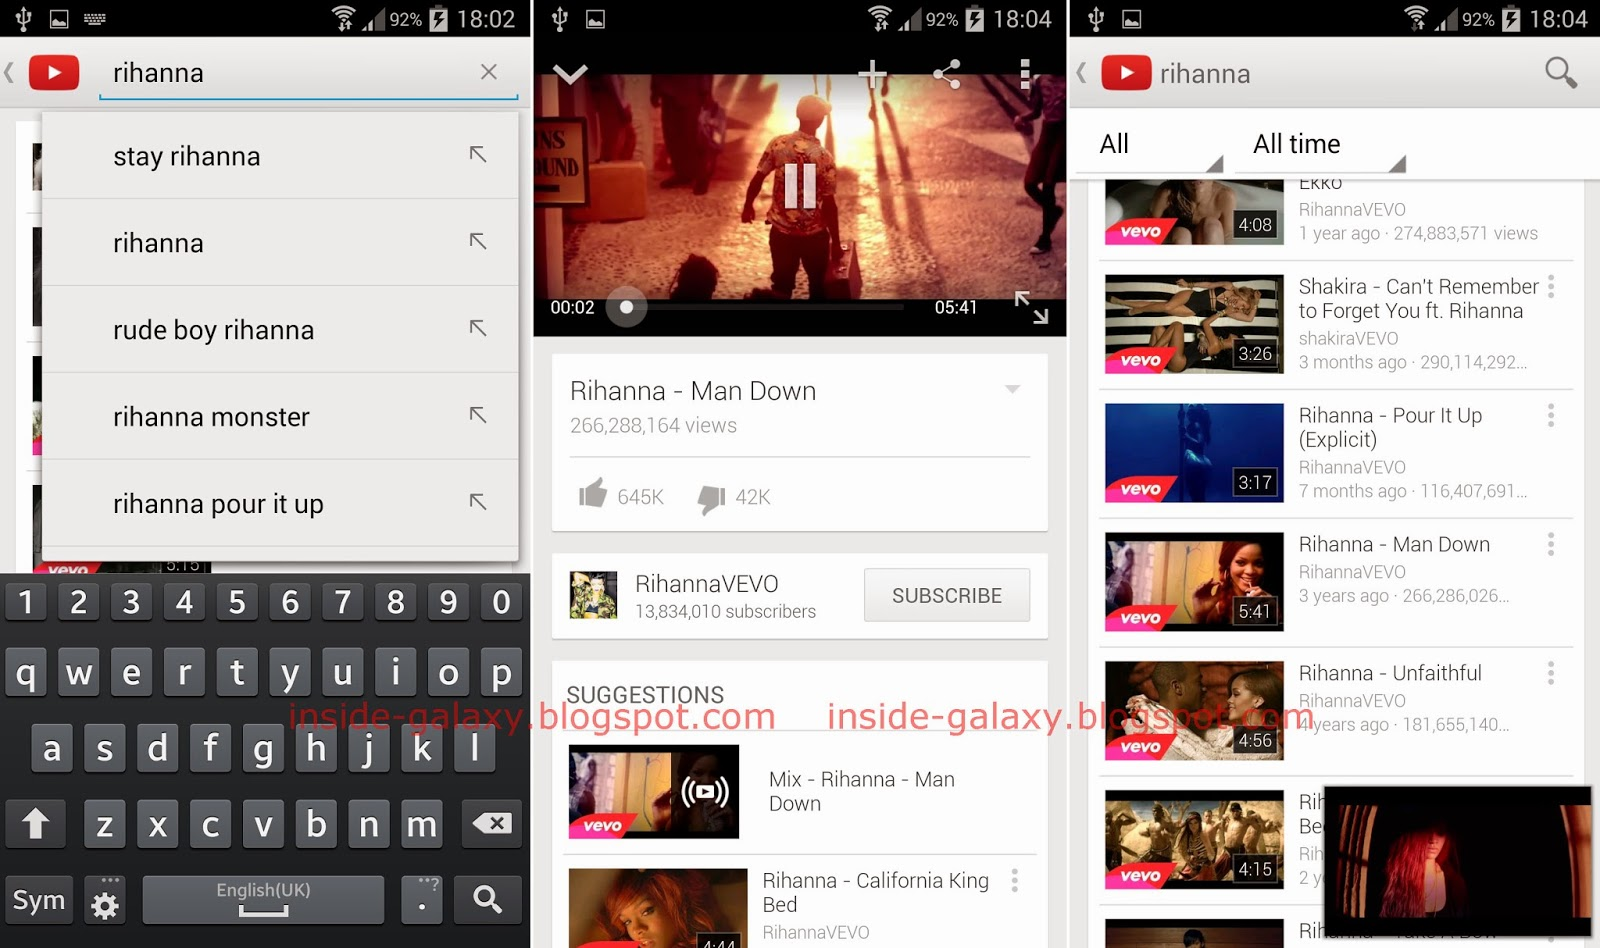 Samsung Galaxy S4: How to Watch Videos in the Youtube App in